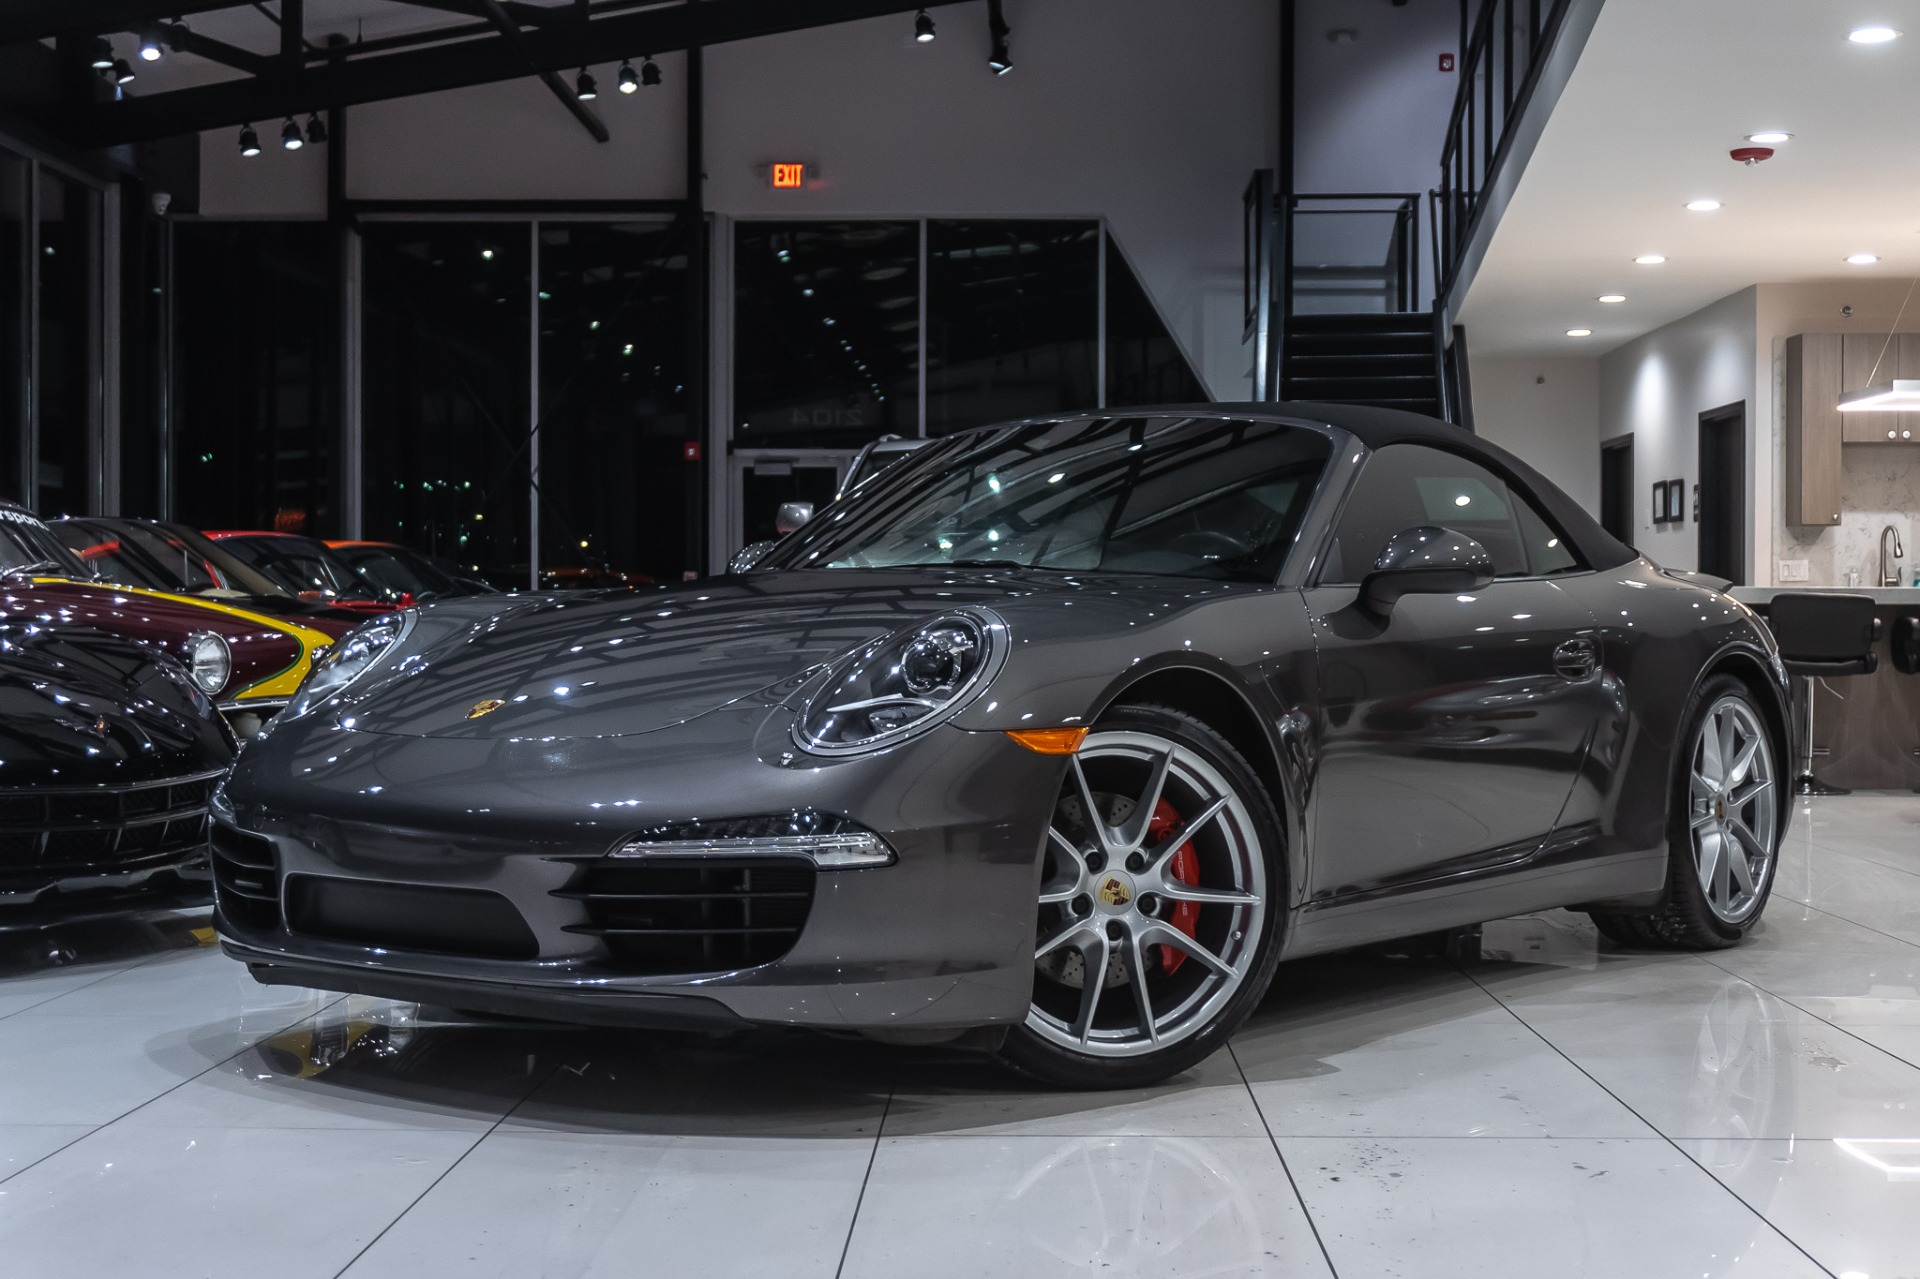 Used-2012-Porsche-911-CARRERA-S-CABRIOLET-PDK-BOSE-SOUND-CARRERA-S-WHLS-DYNAMIC-LIGHTS